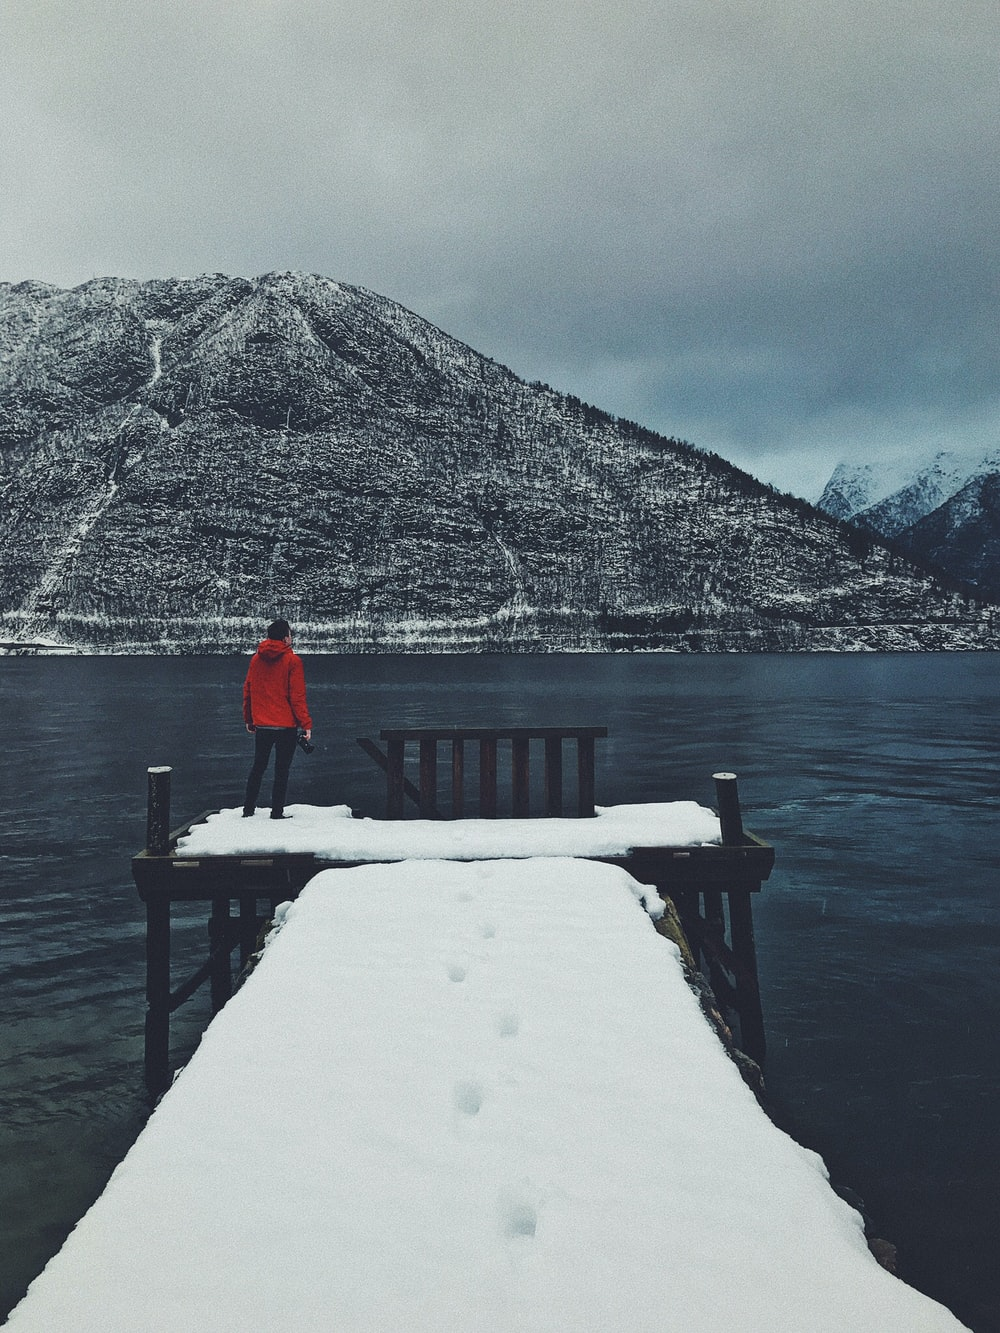 person standing on dock covered with snow looking at mountain across body of water